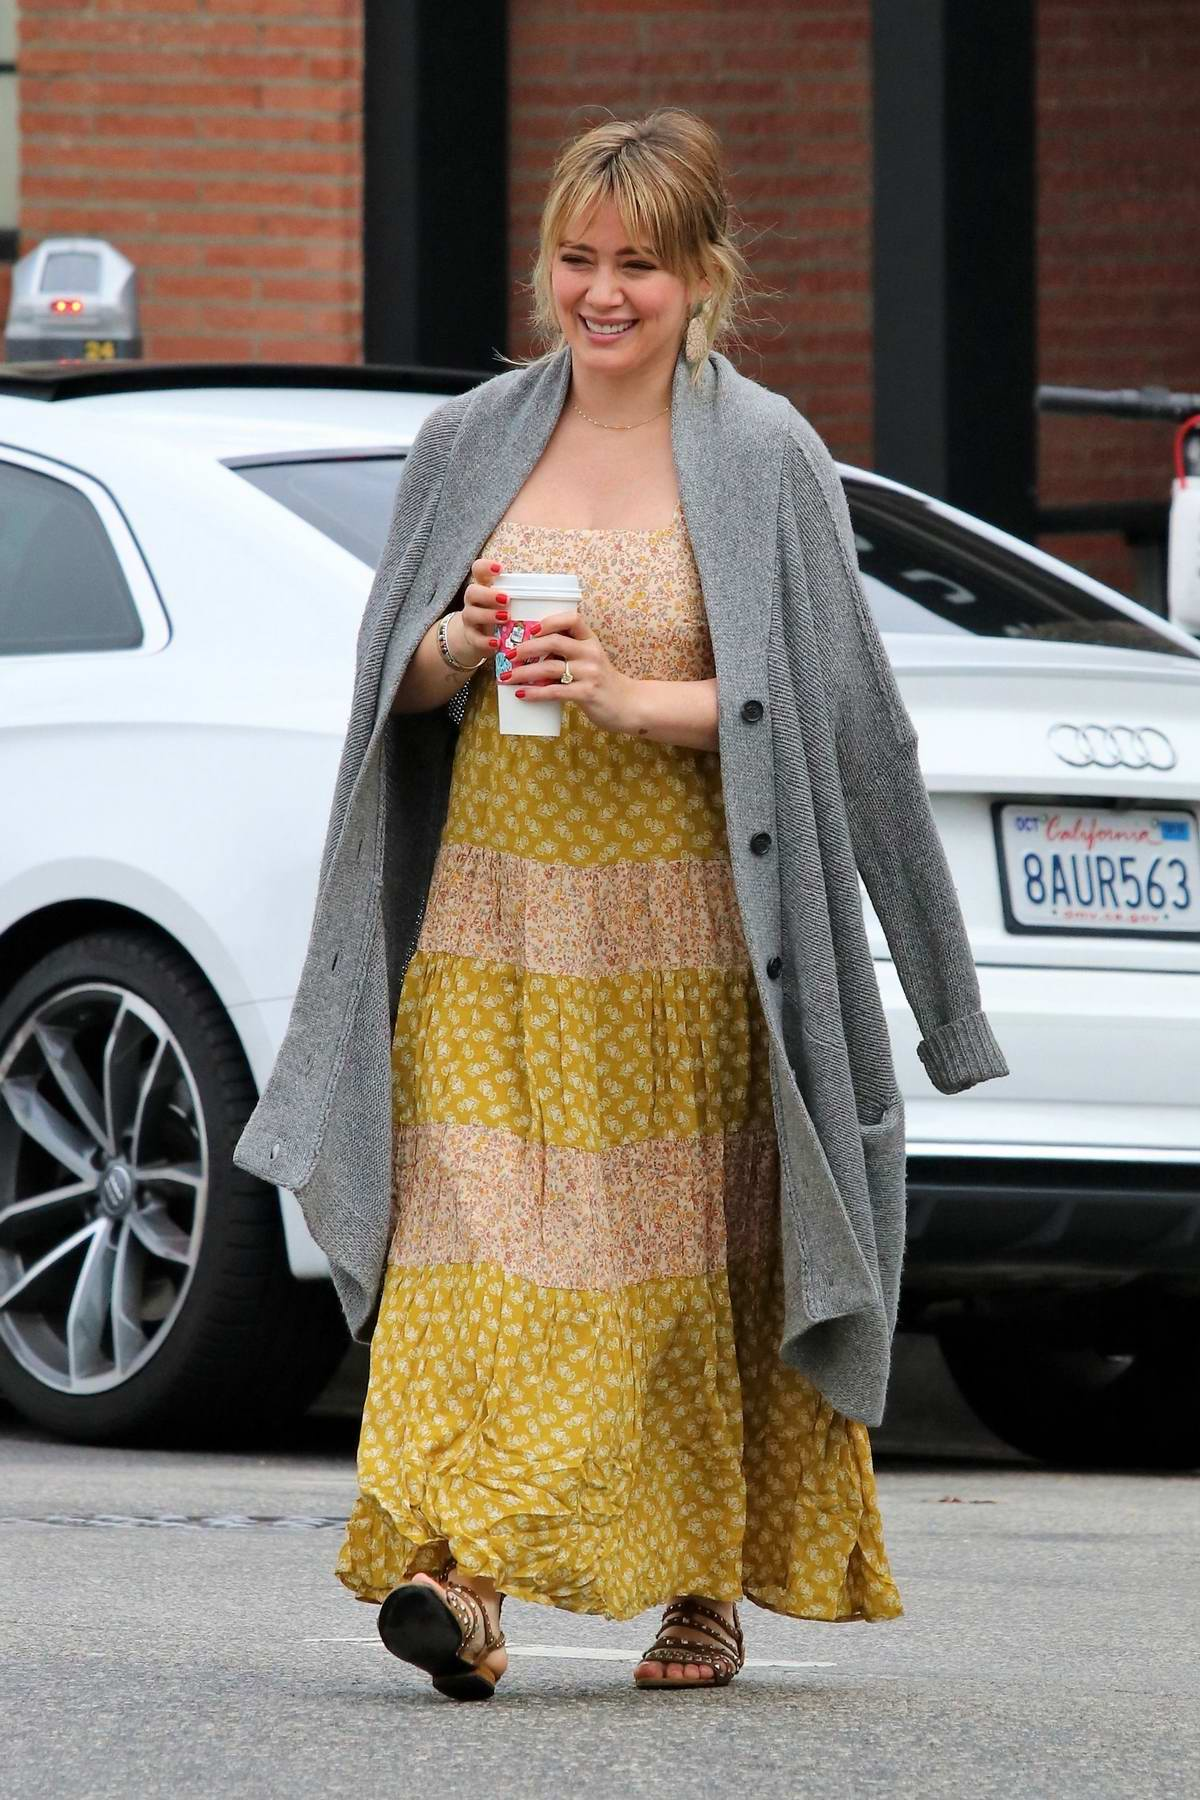 Hilary Duff shops for groceries at Gelson's before heading to lunch in Studio City, Los Angeles